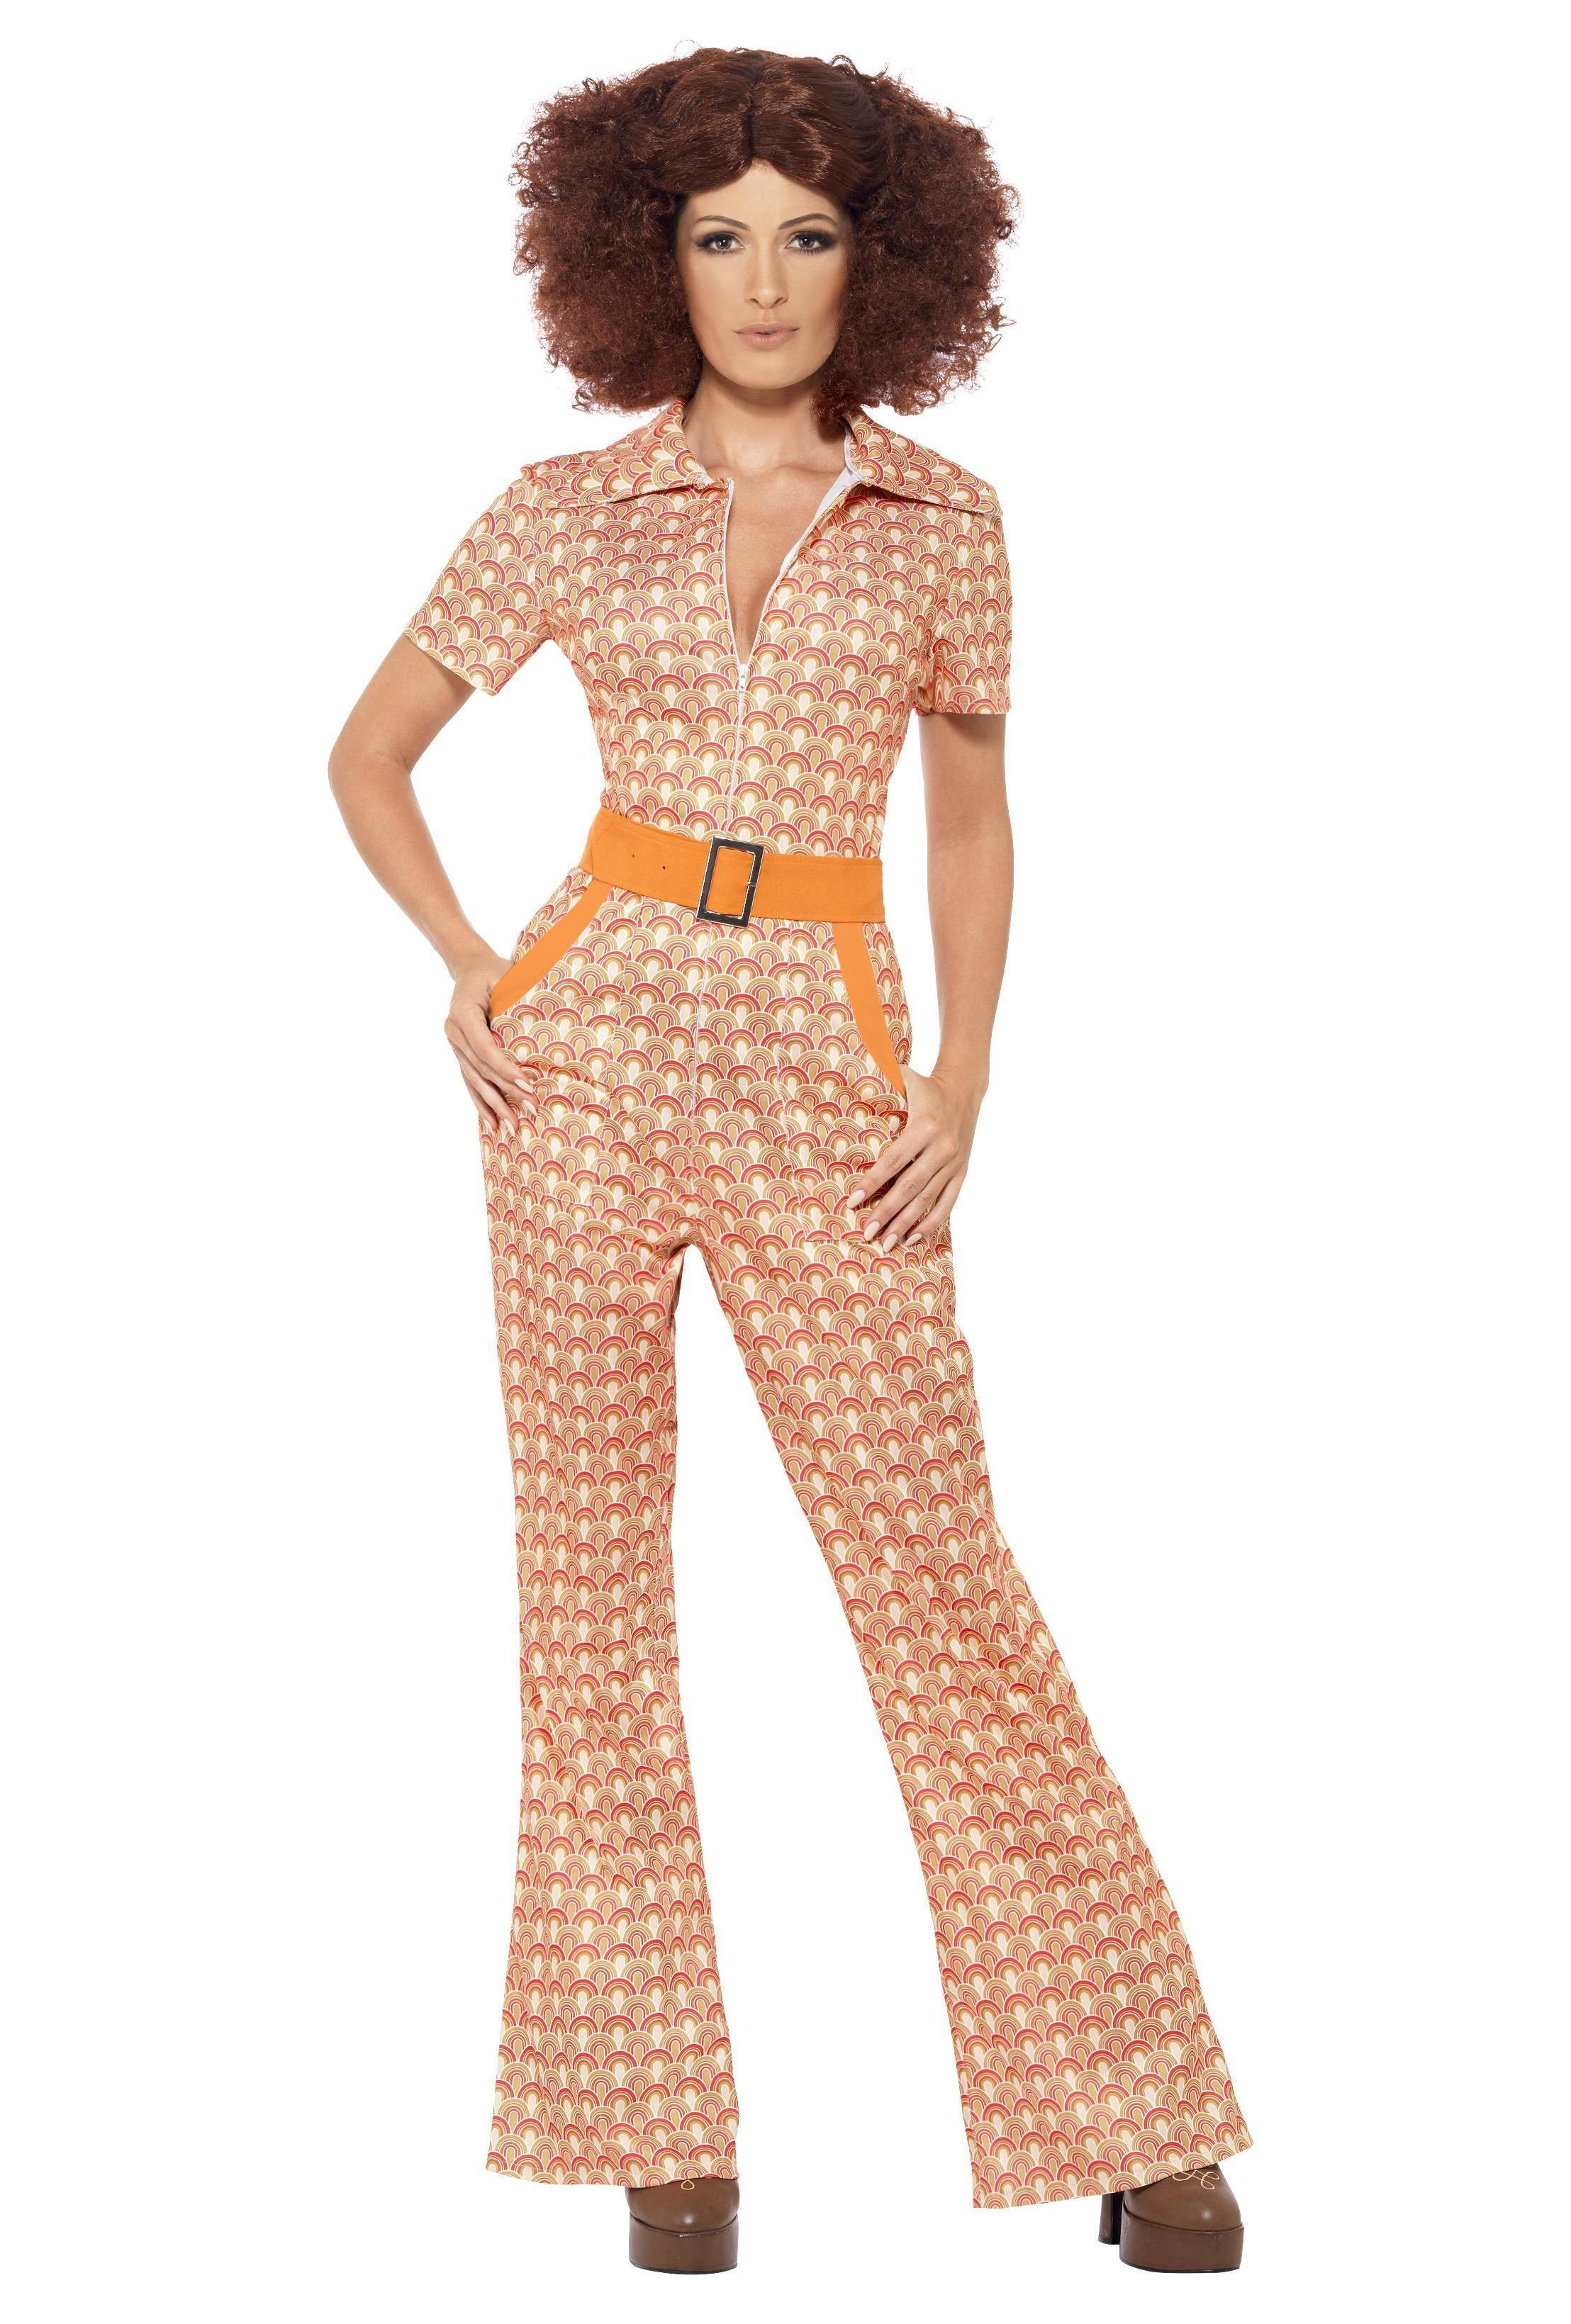 70s Authentic Chic Costume Orange